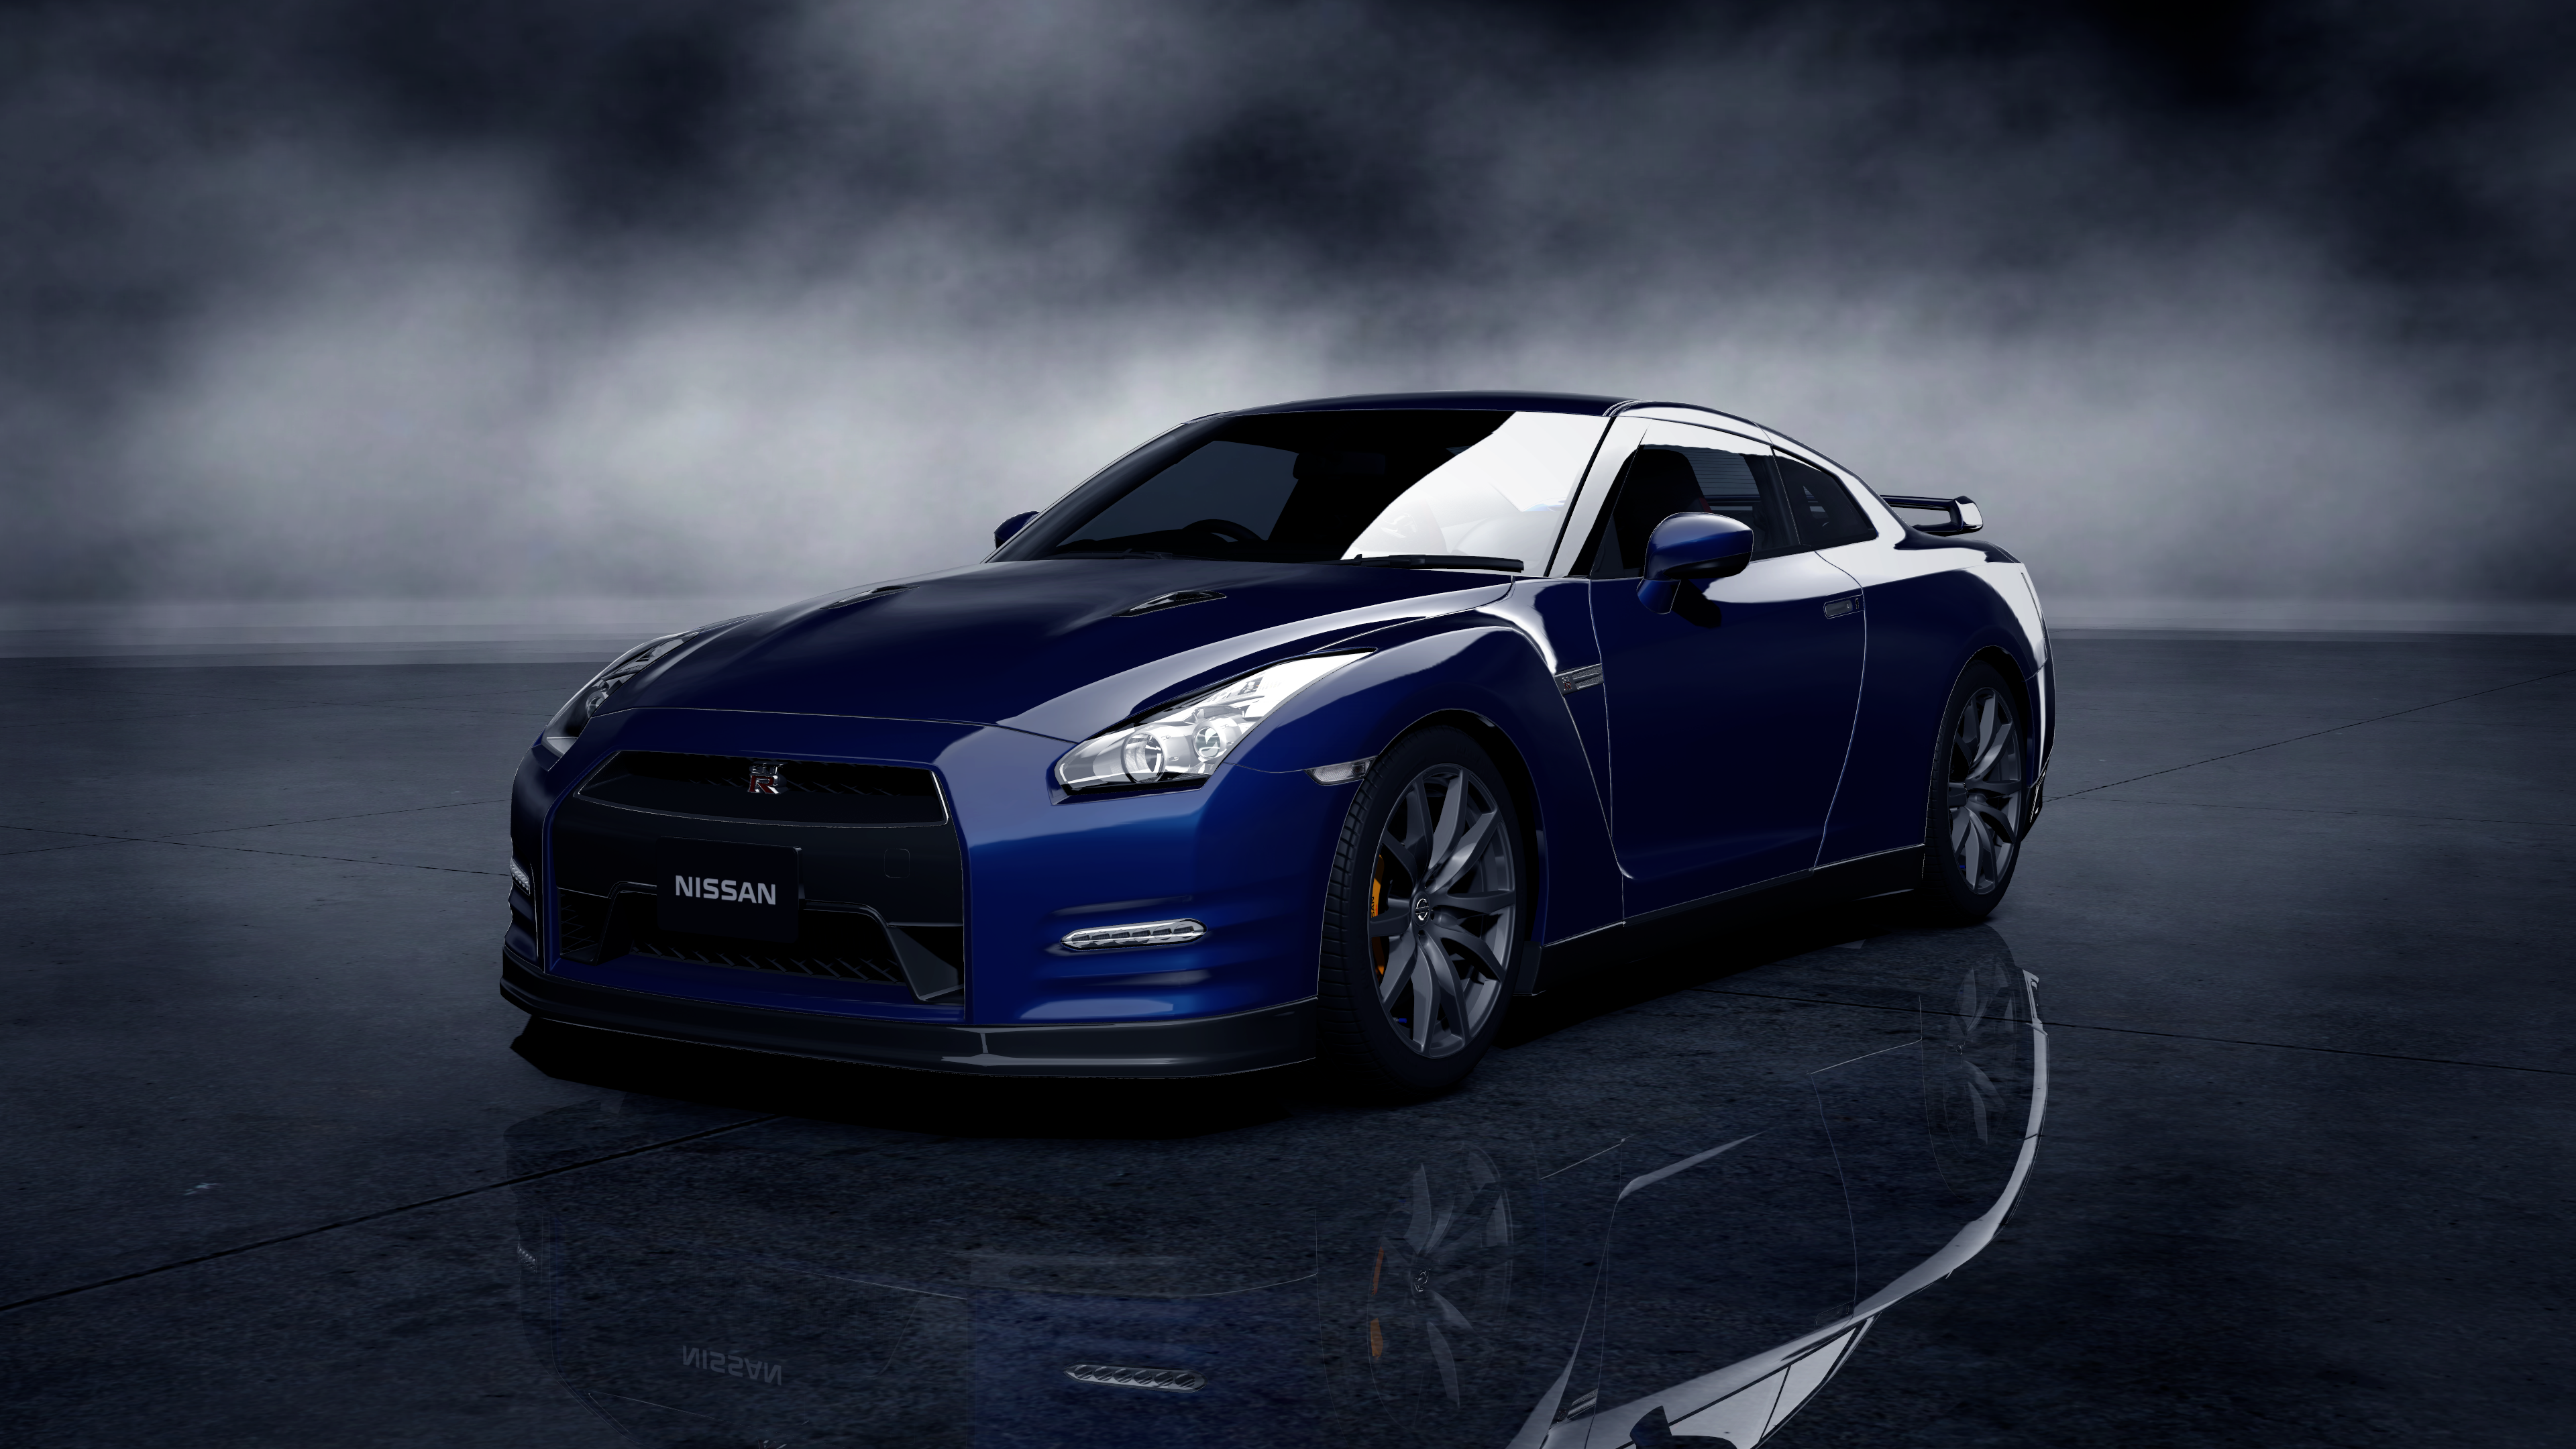 Nissan GTR 2017 Wallpaper